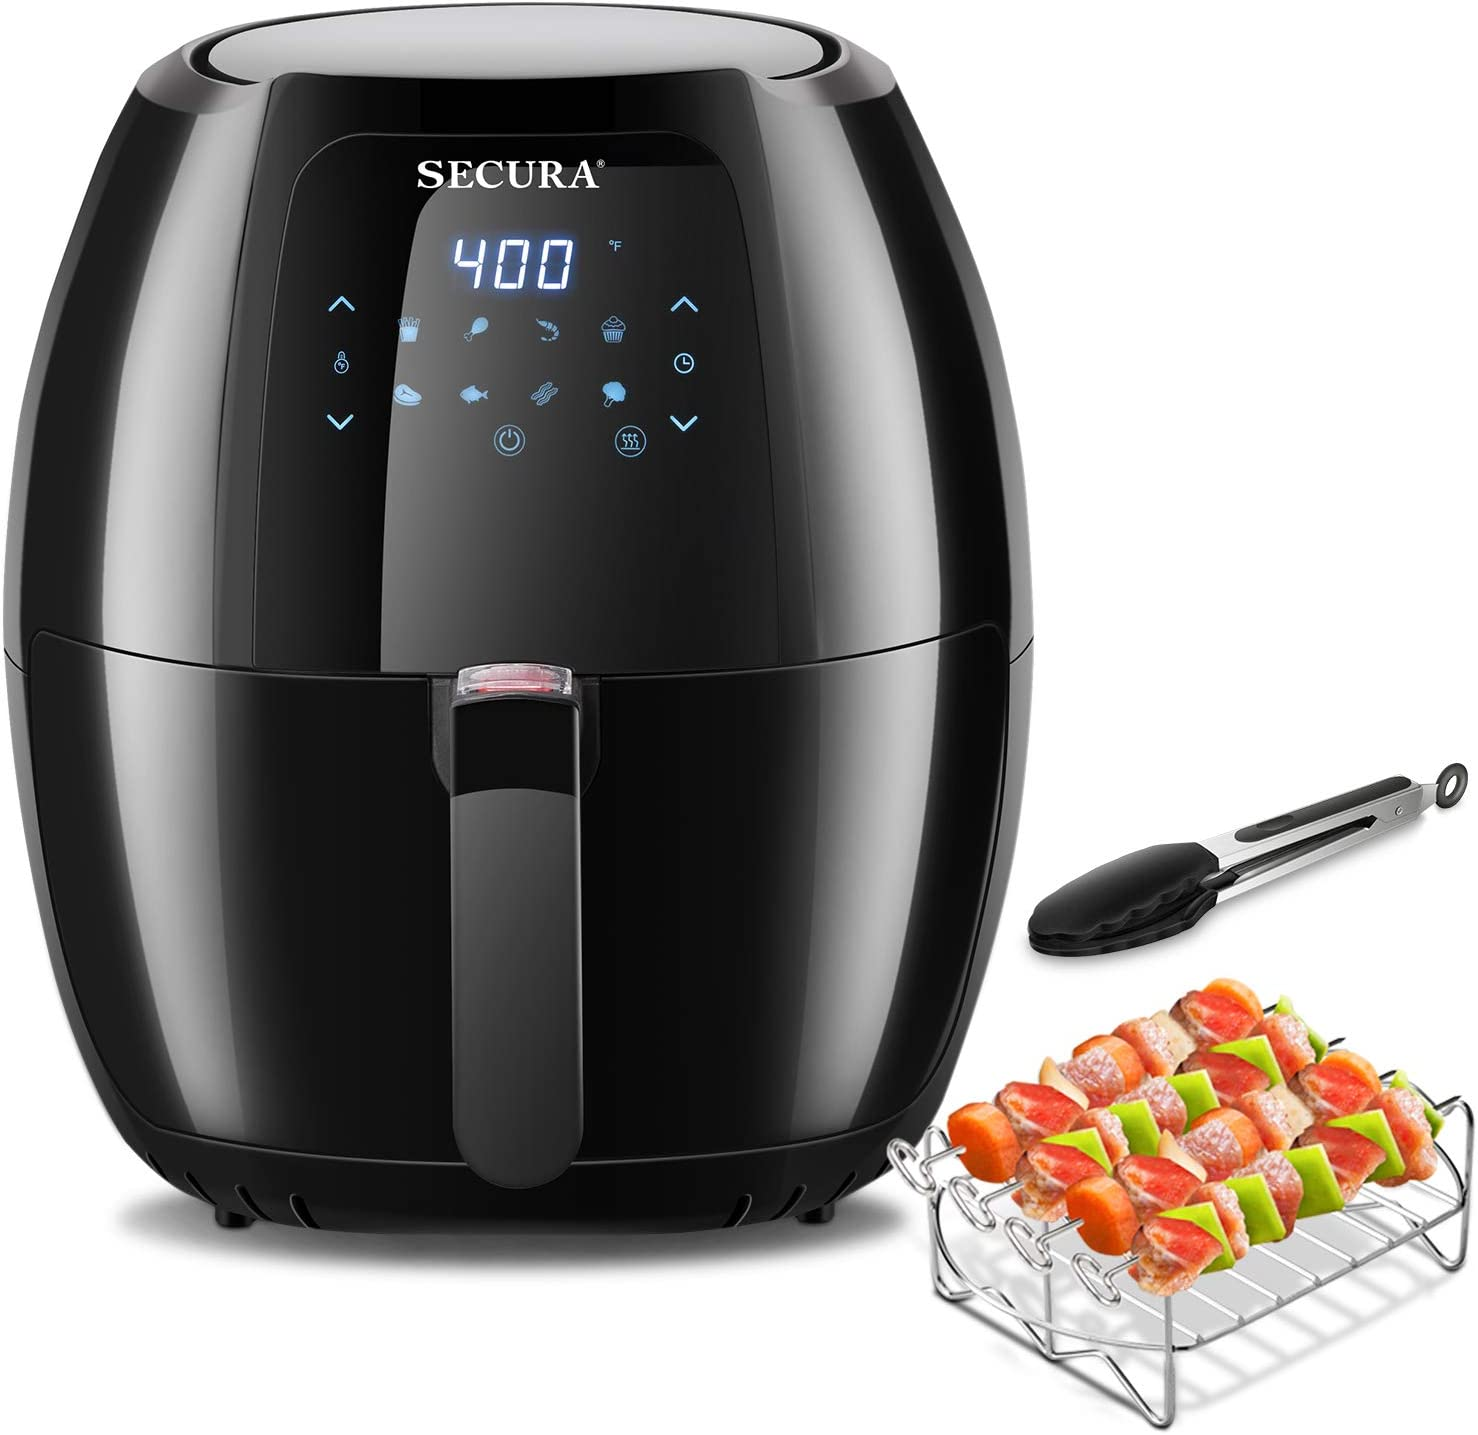 Secura Max 6.3Qt Air Fryer, 1700W Digital Hot Air Fryer | 10-in-1 Oven Oilless Electric Cooker w/Preheat & Shake Remind, 8 Cooking Presets, Nonstick Basket,ETL Listed (Bonus BBQ Rack & Skewers)